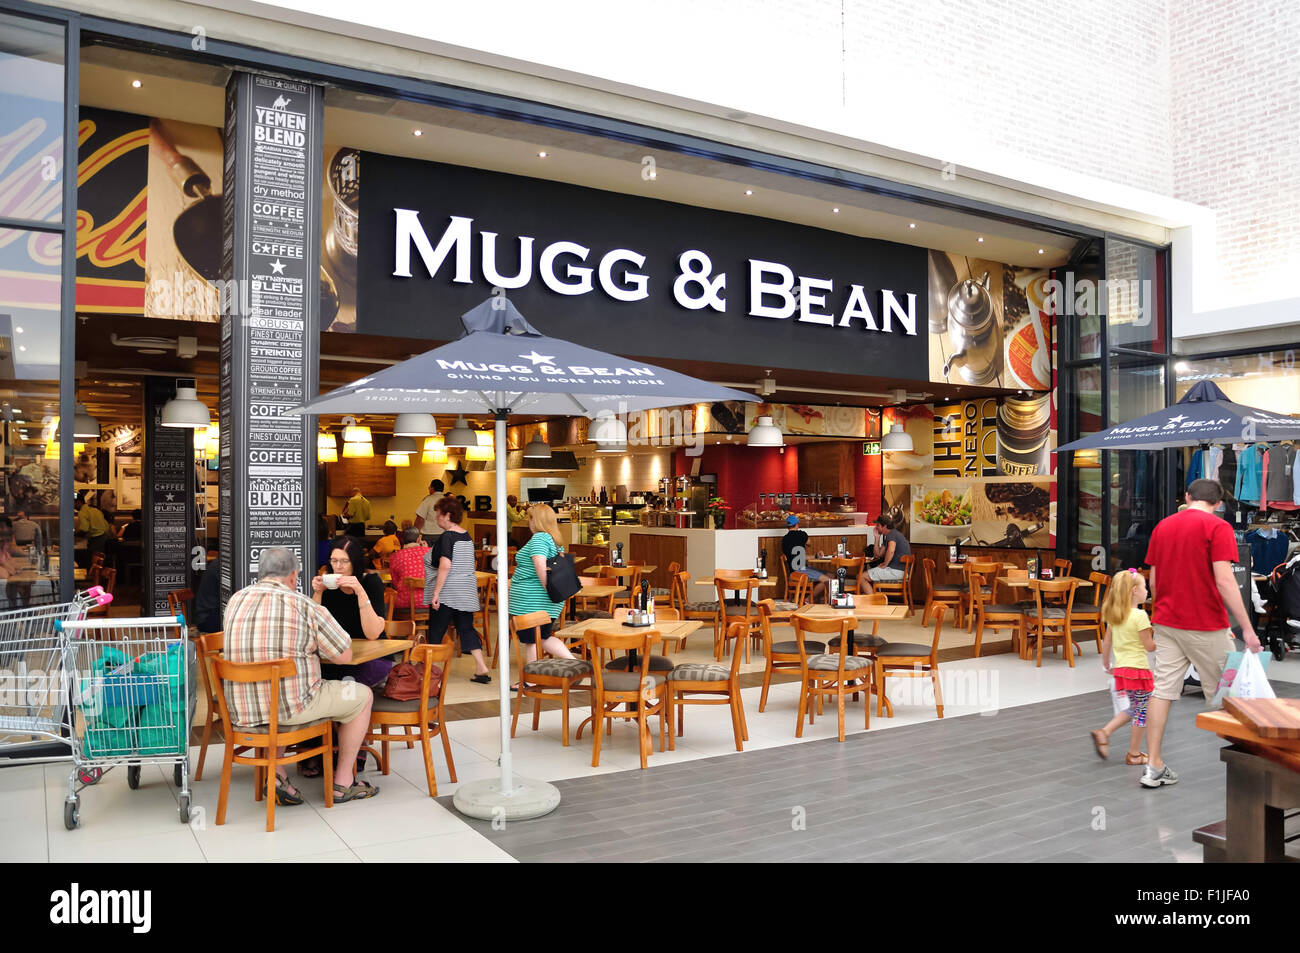 mugg bean coffee shop in heidelberg mall jacobs street stock photo 87073672 alamy. Black Bedroom Furniture Sets. Home Design Ideas